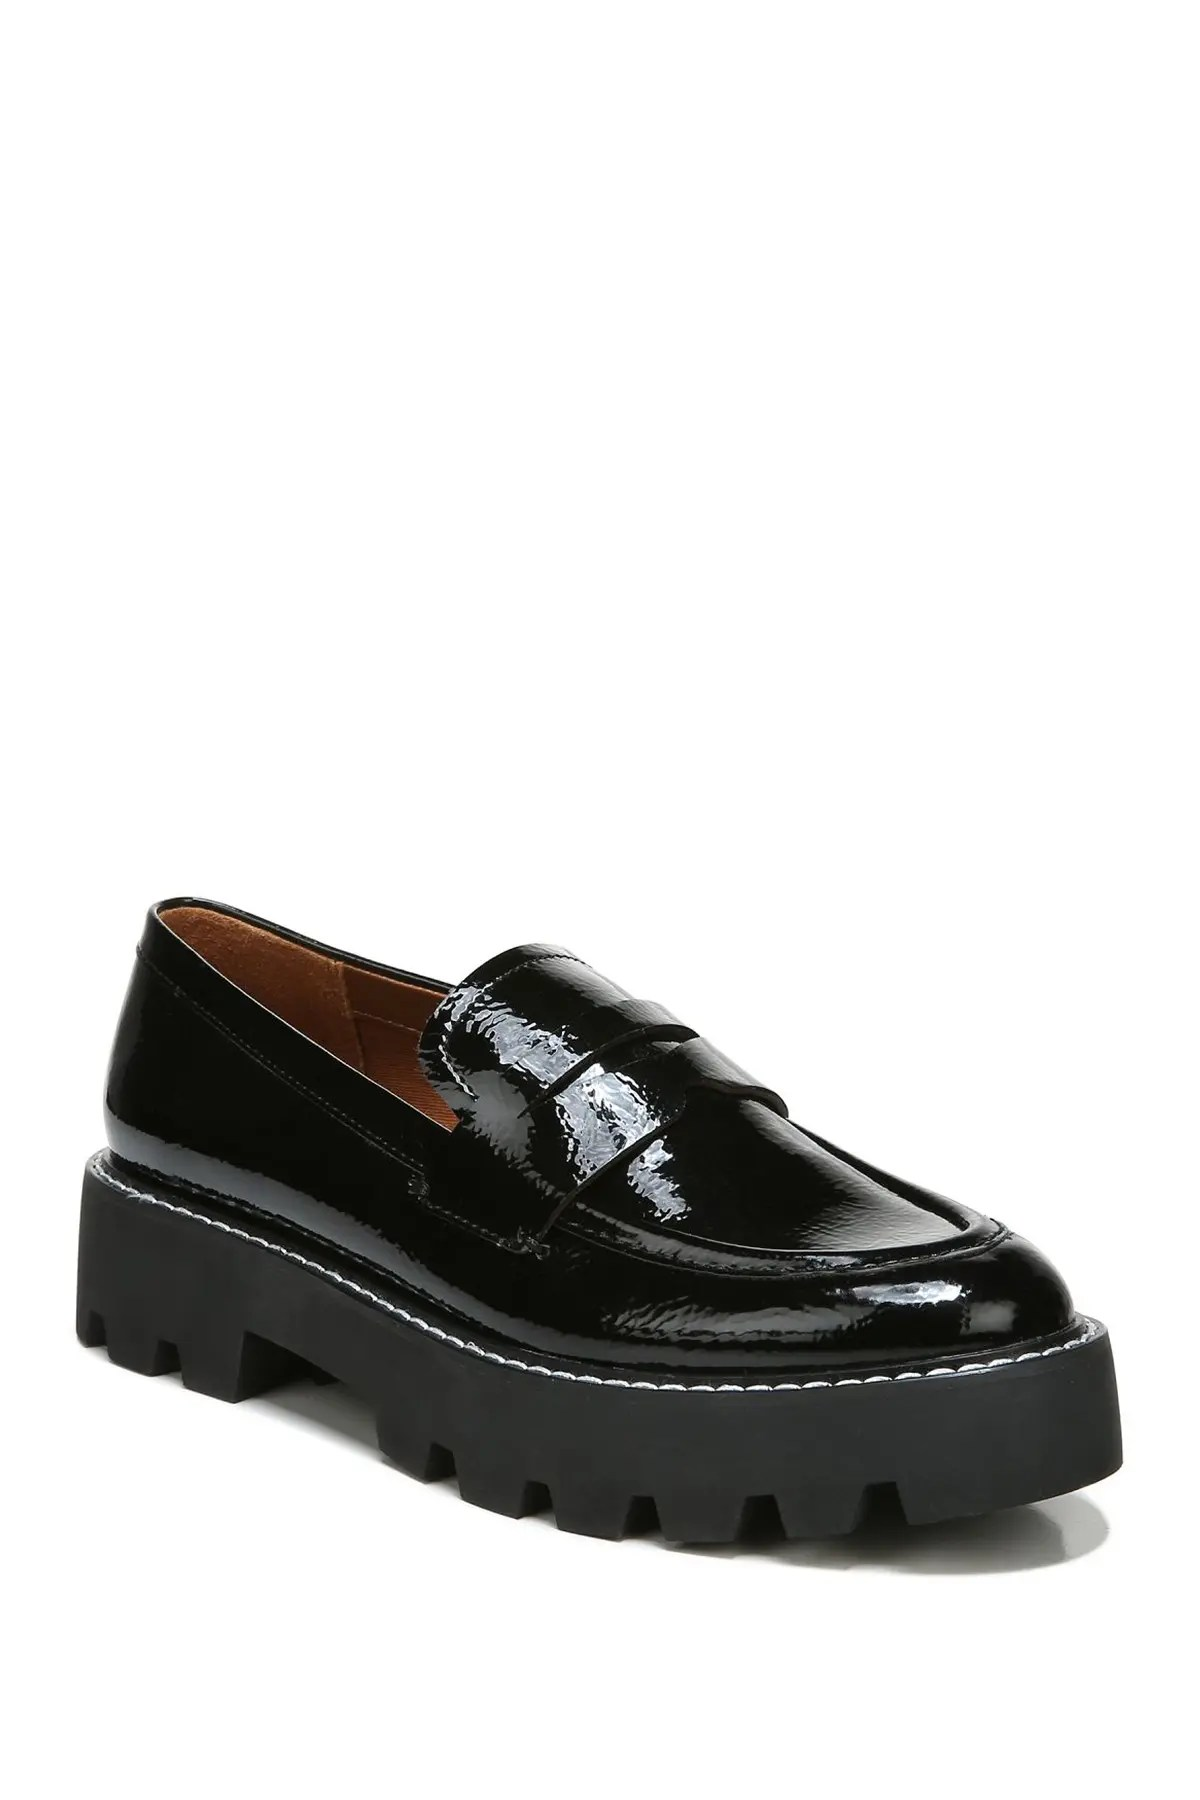 loafers oxfords for women nordstrom